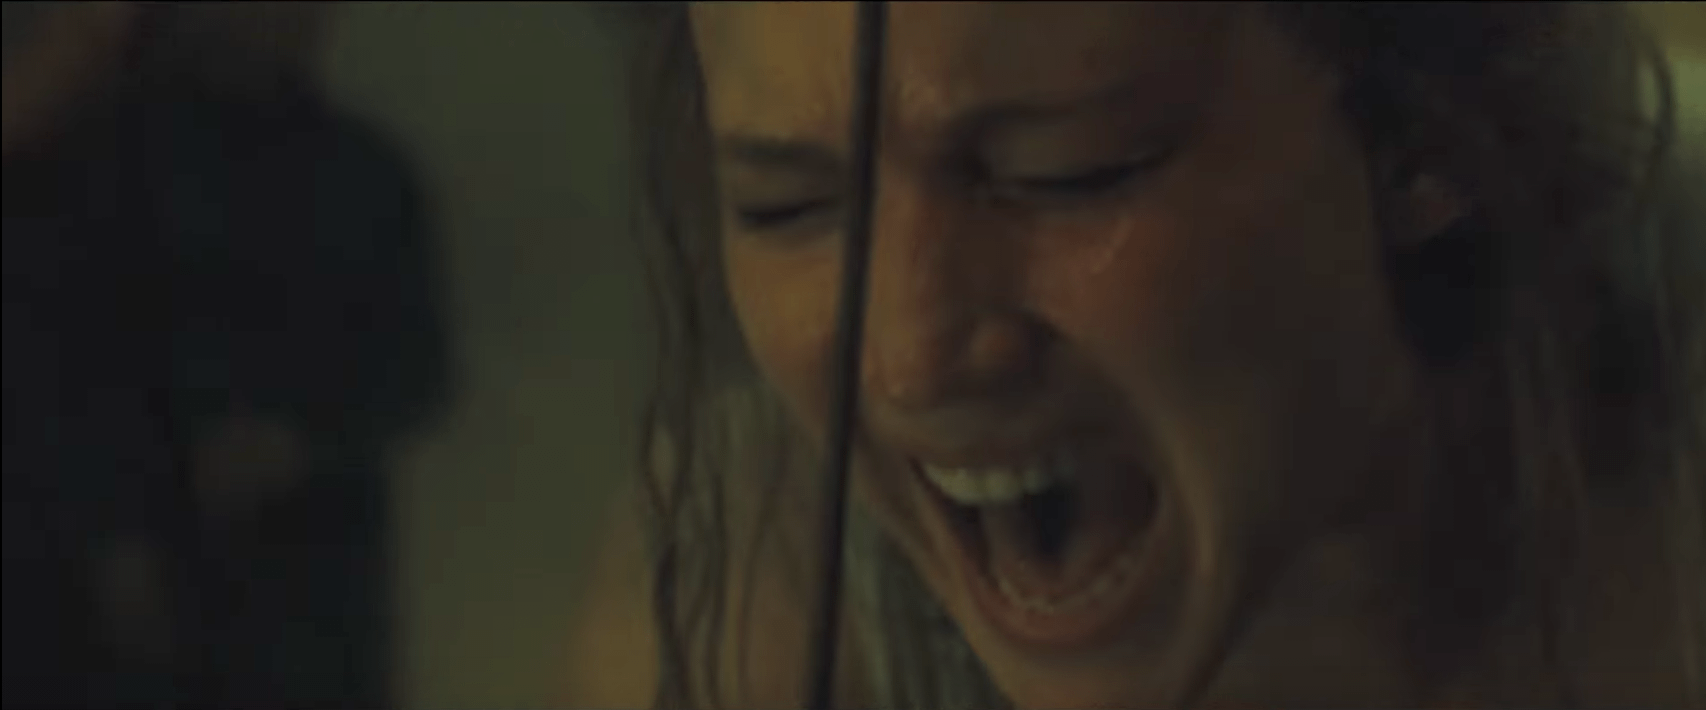 Jennifer Lawrence Not About To See Your Light In First Trailer For Darren Aronofsky's 'Mother!'